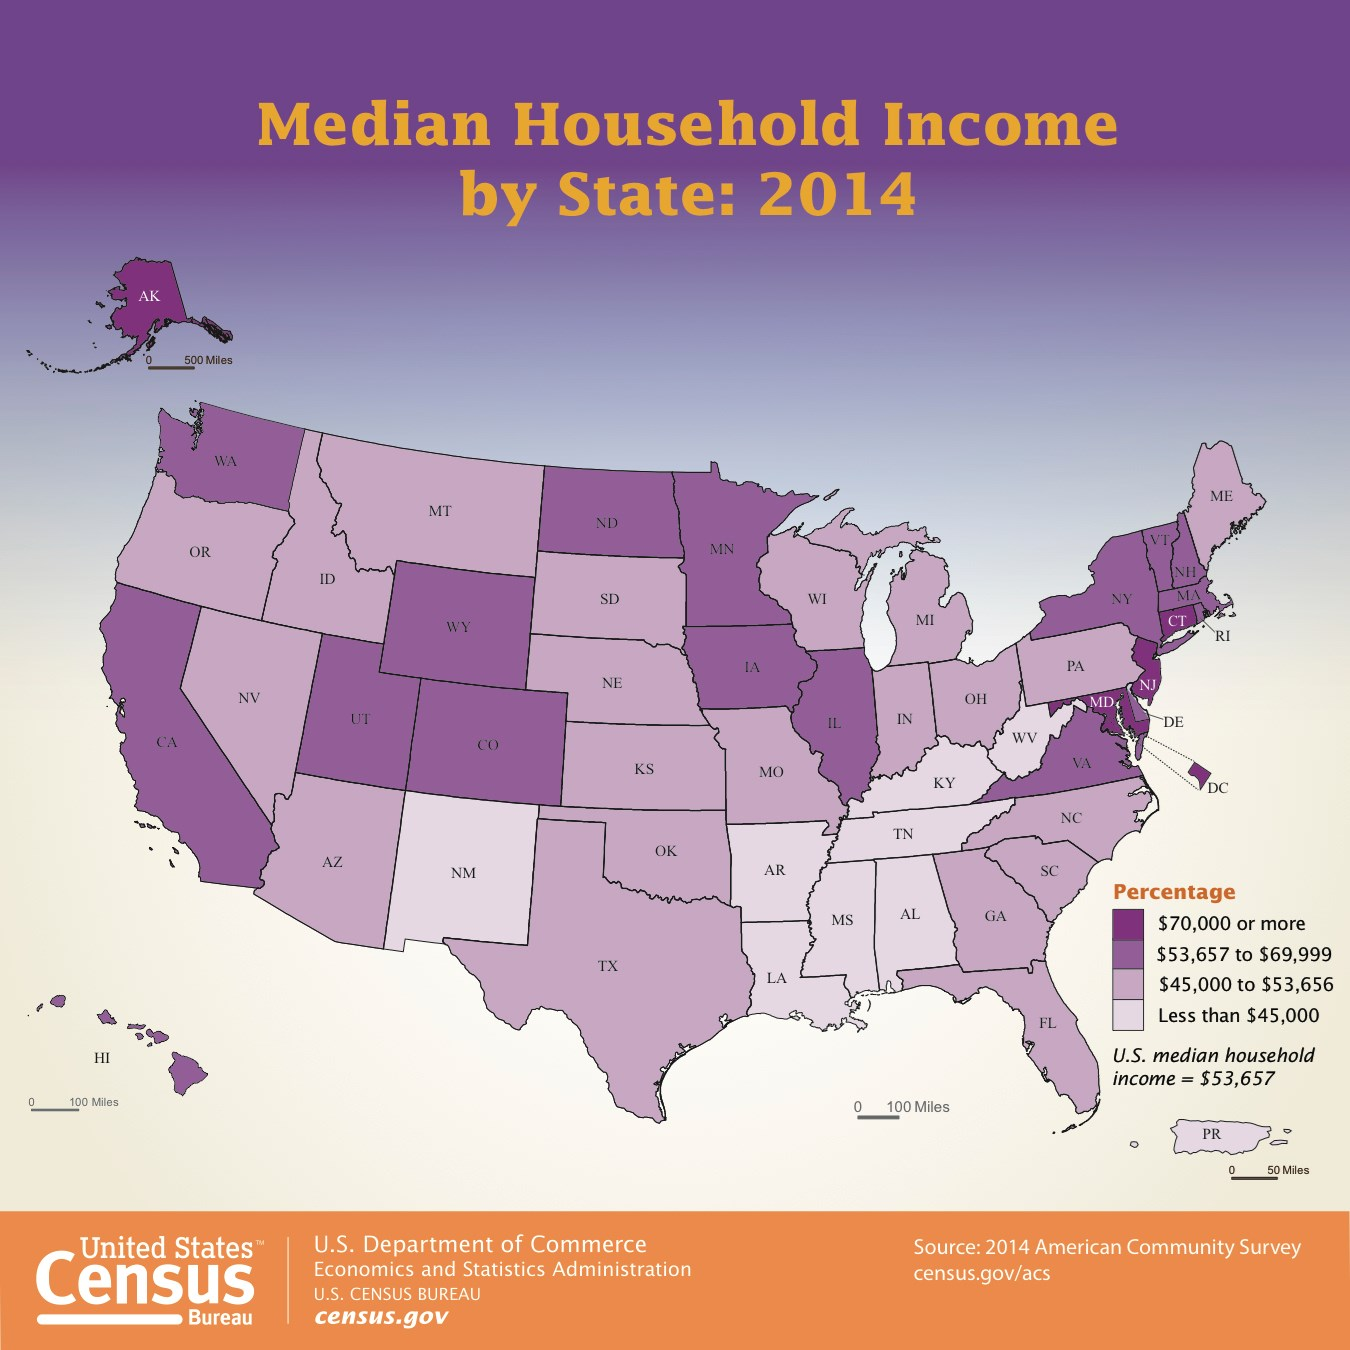 Where affordability, income are highest, lowest